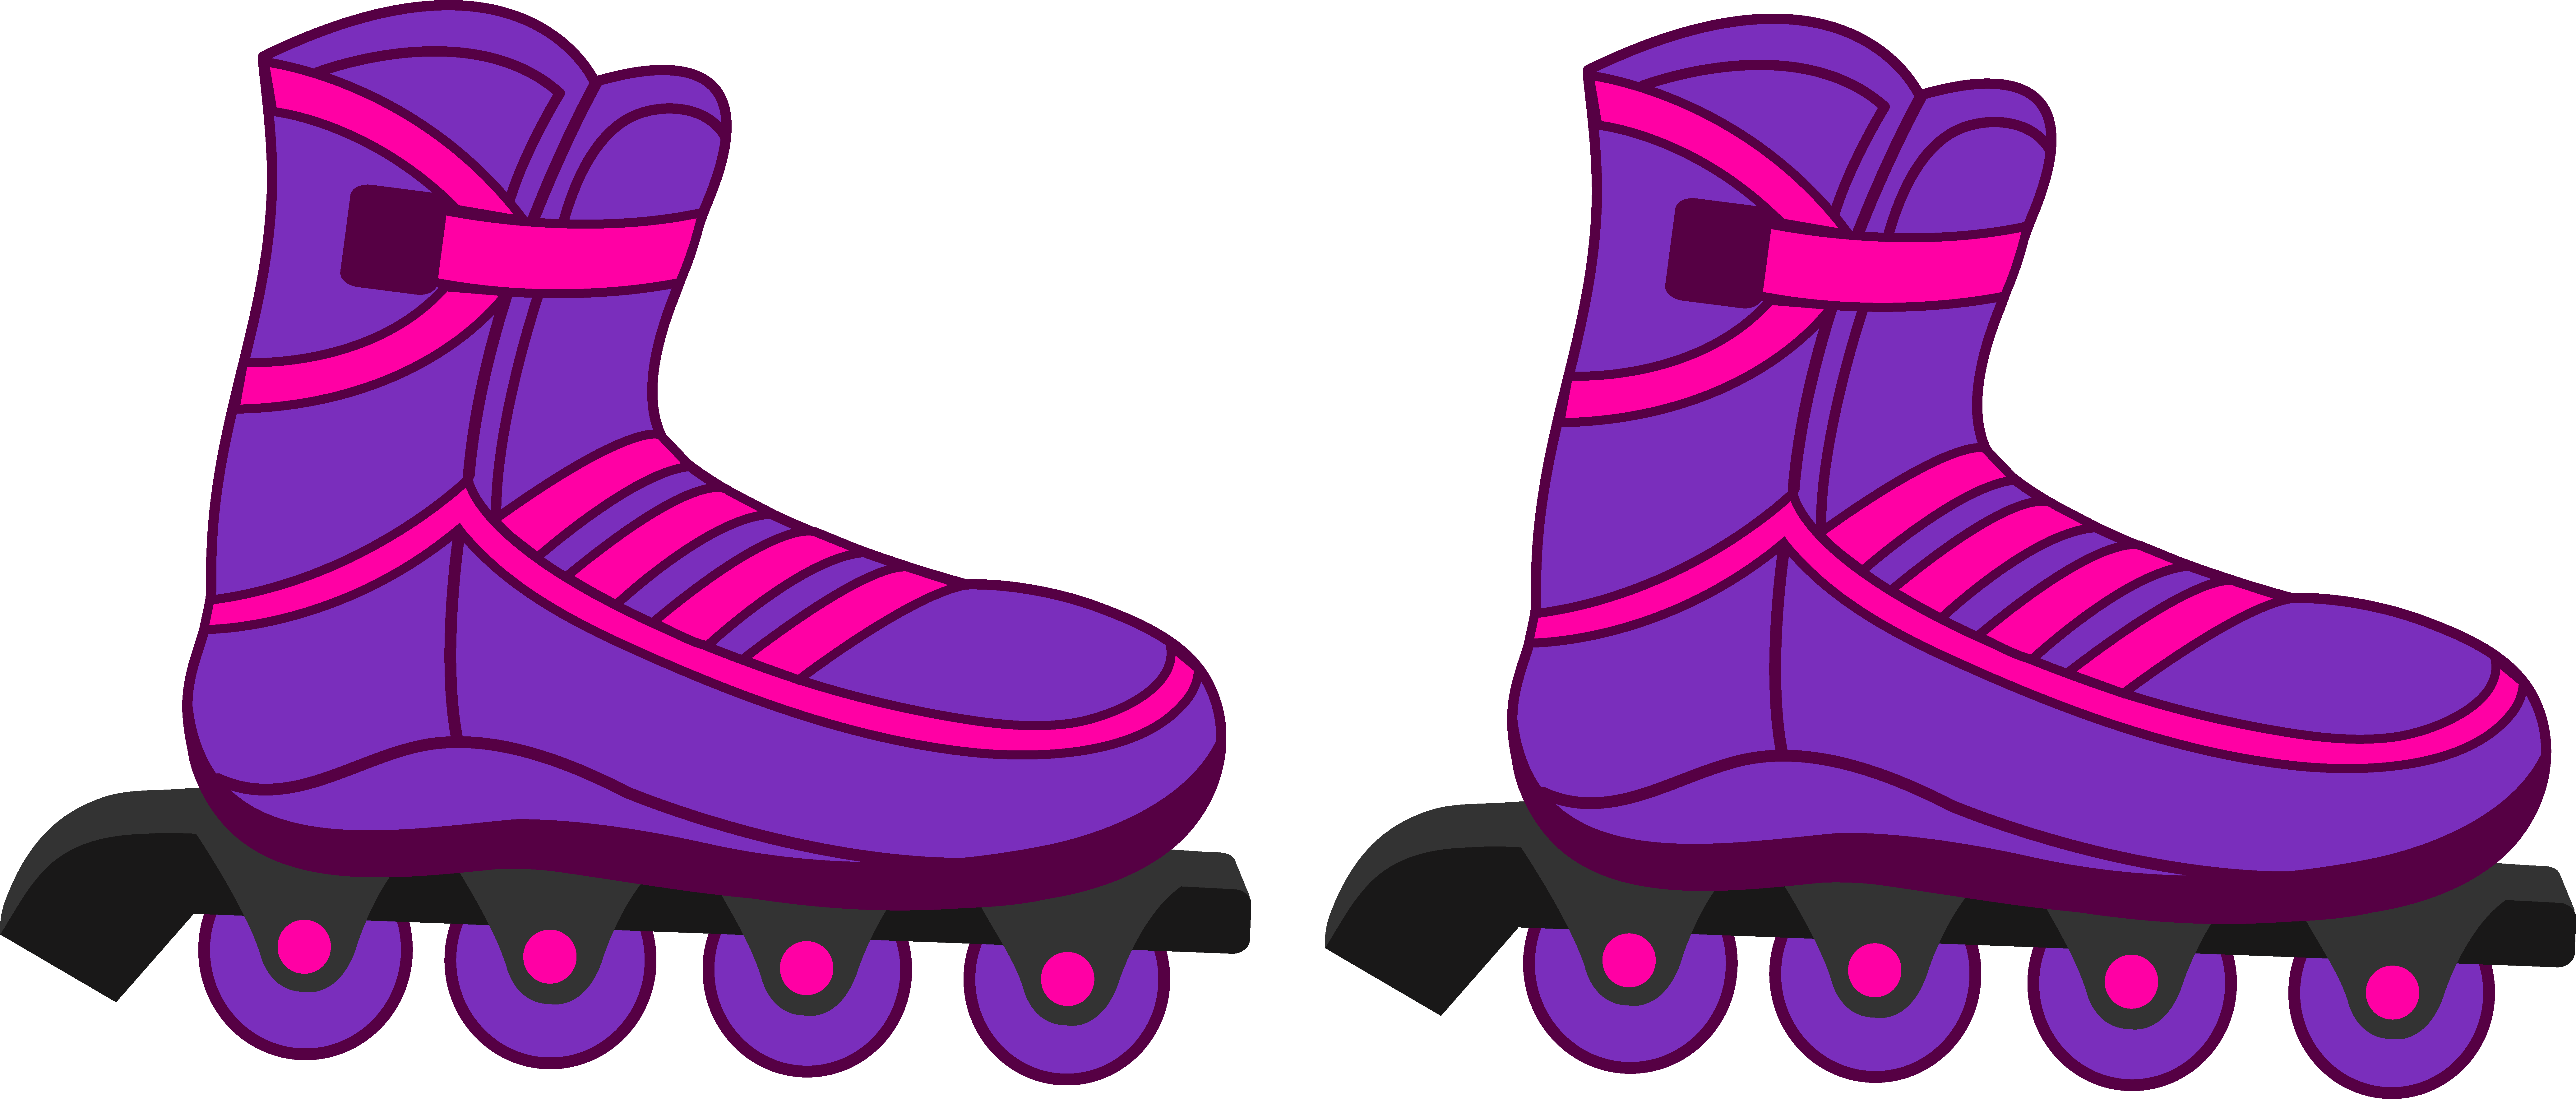 8285x3534 Figurine Clipart Roller Skating